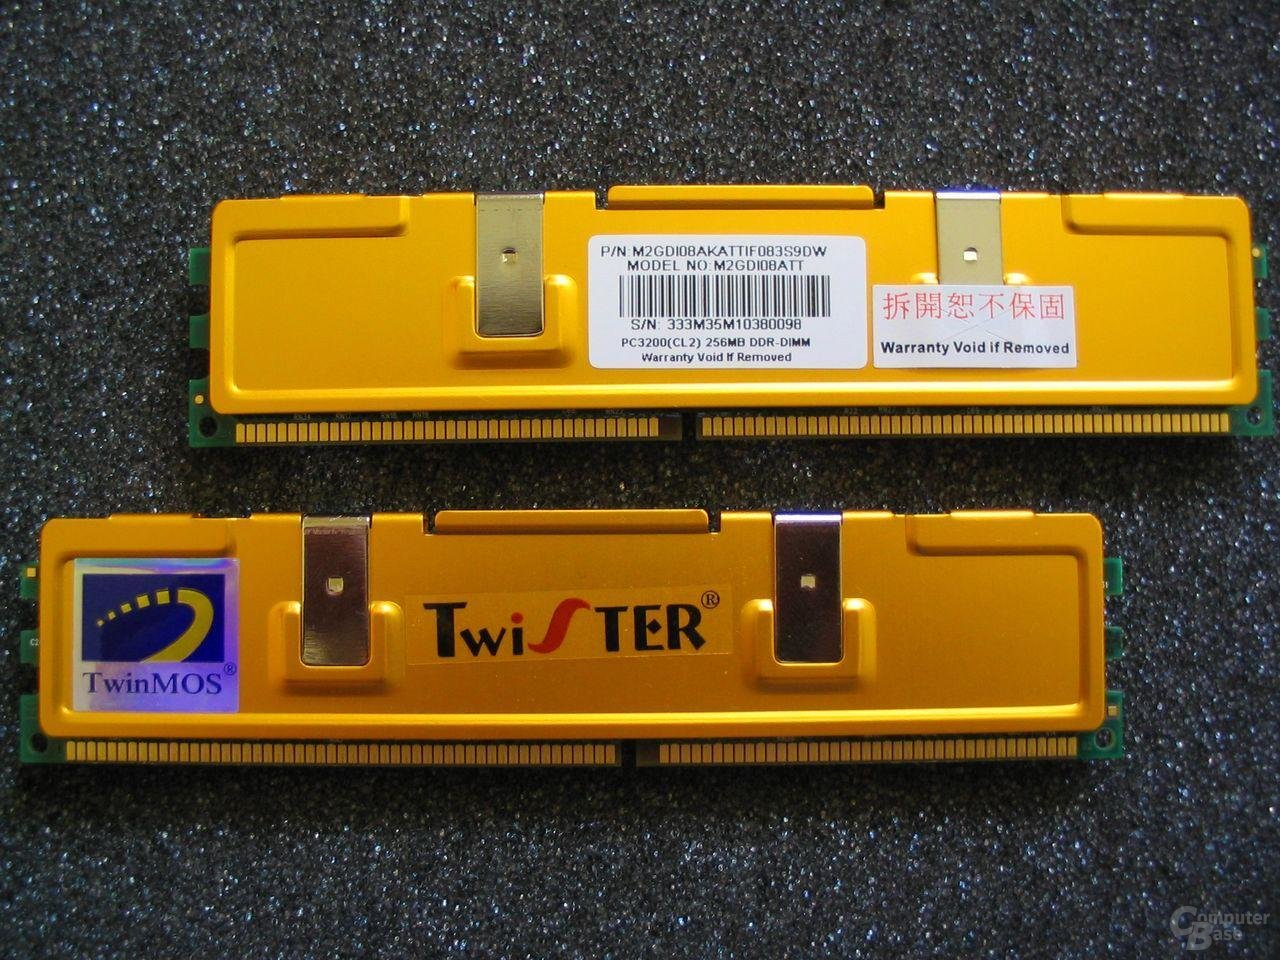 TwinMOS TwiSTER PC3200 (CL2) 256MB